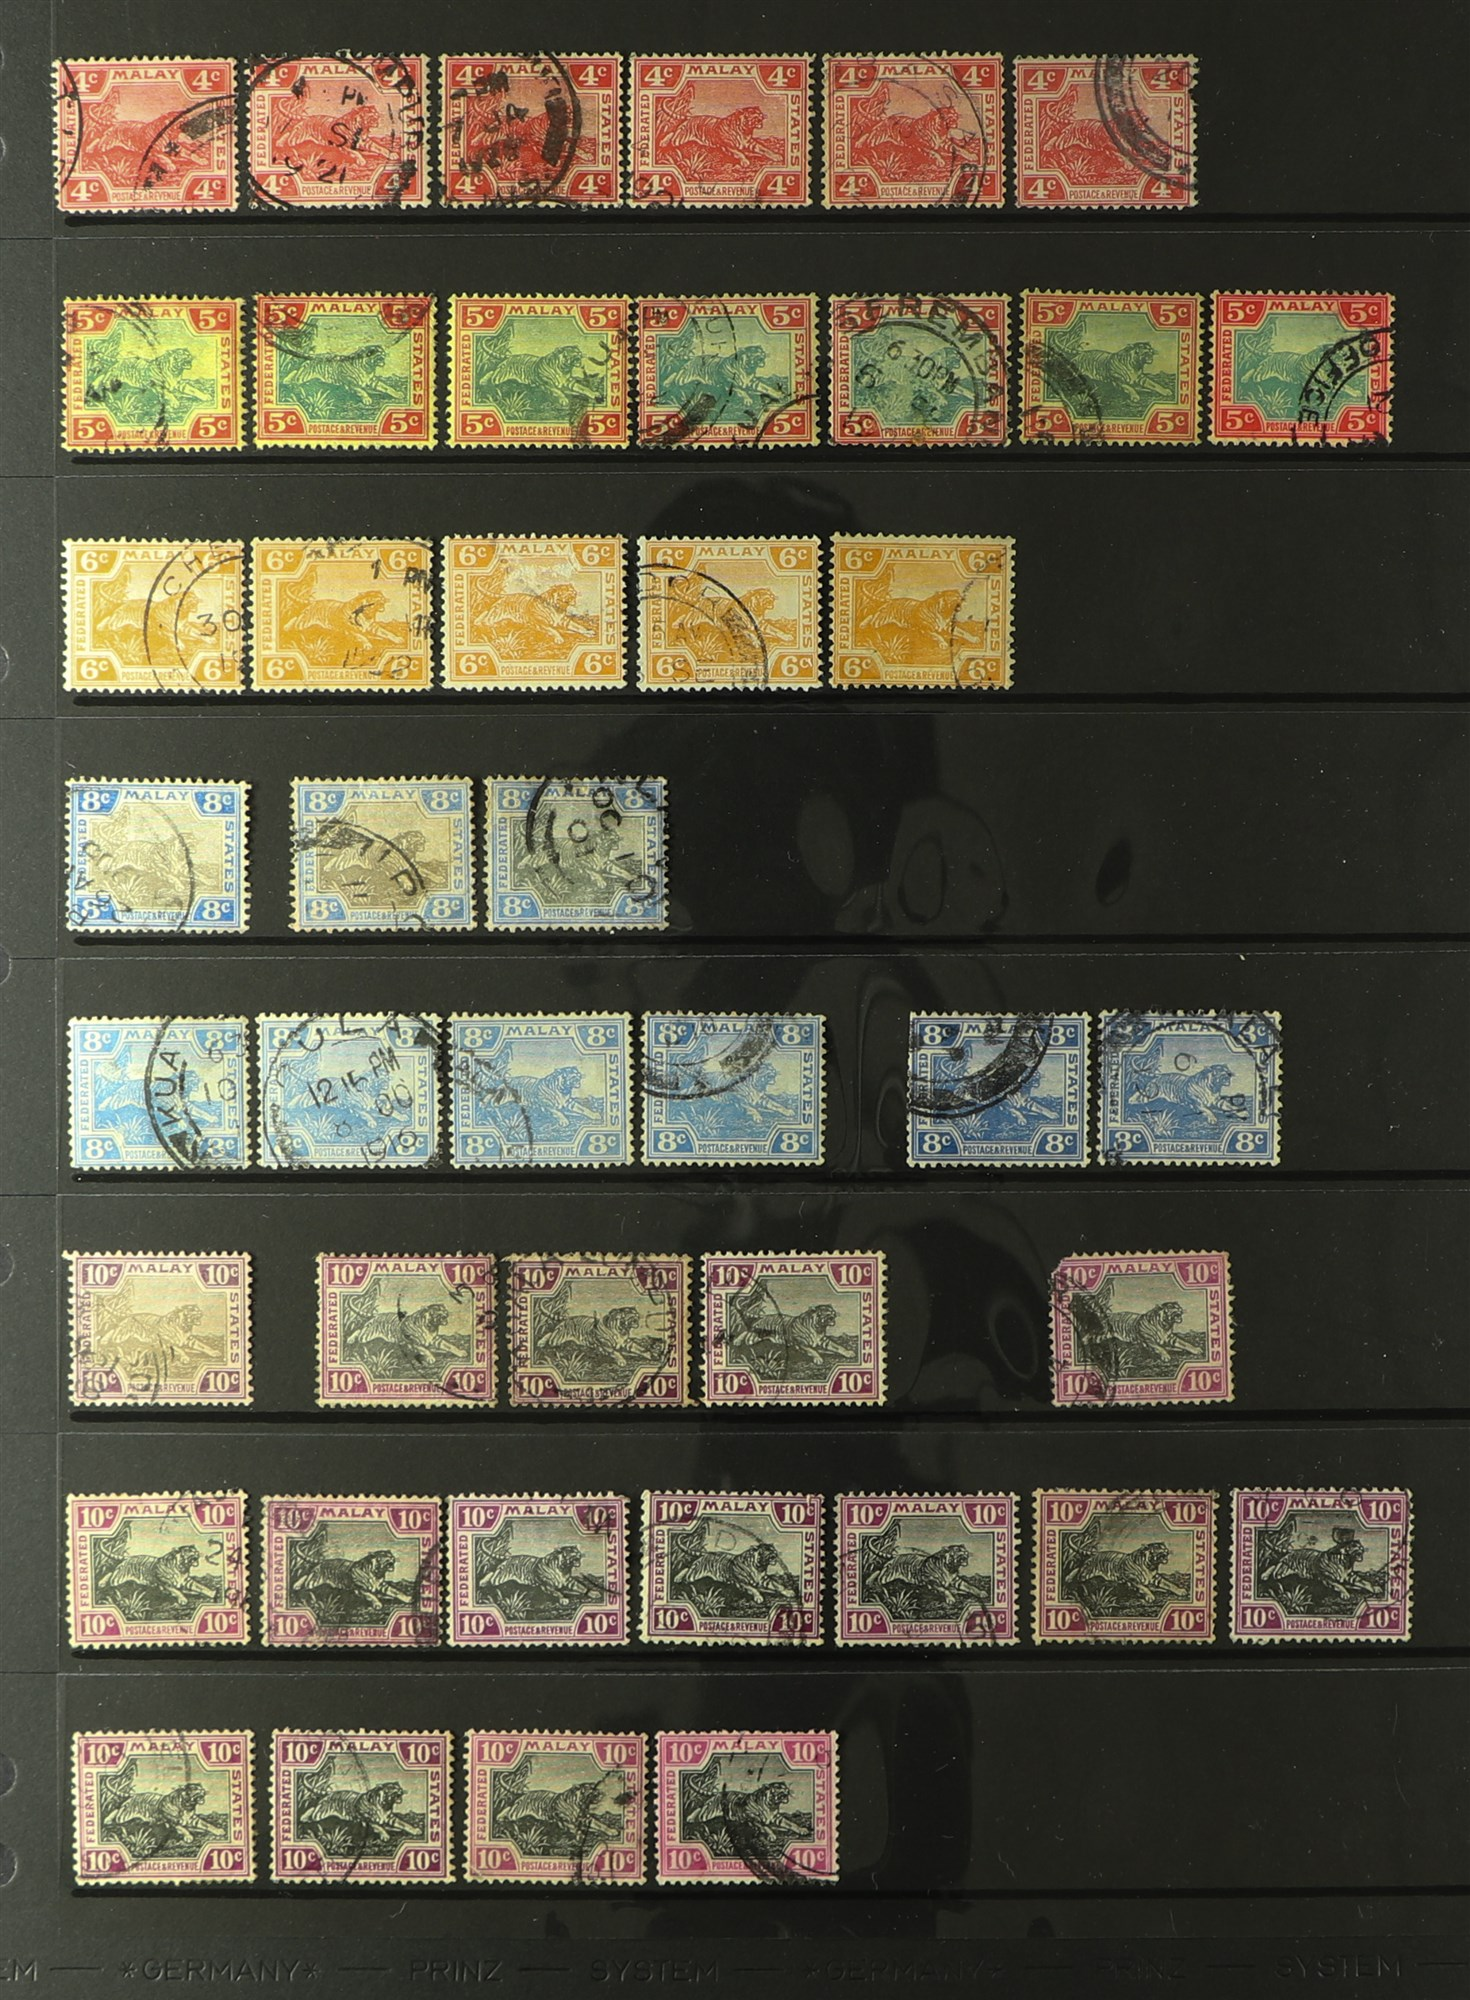 MALAYA STATES FEDERATED MALAY STATES 1900-1934 used ranges with many shades, wmk varieties & - Image 2 of 6